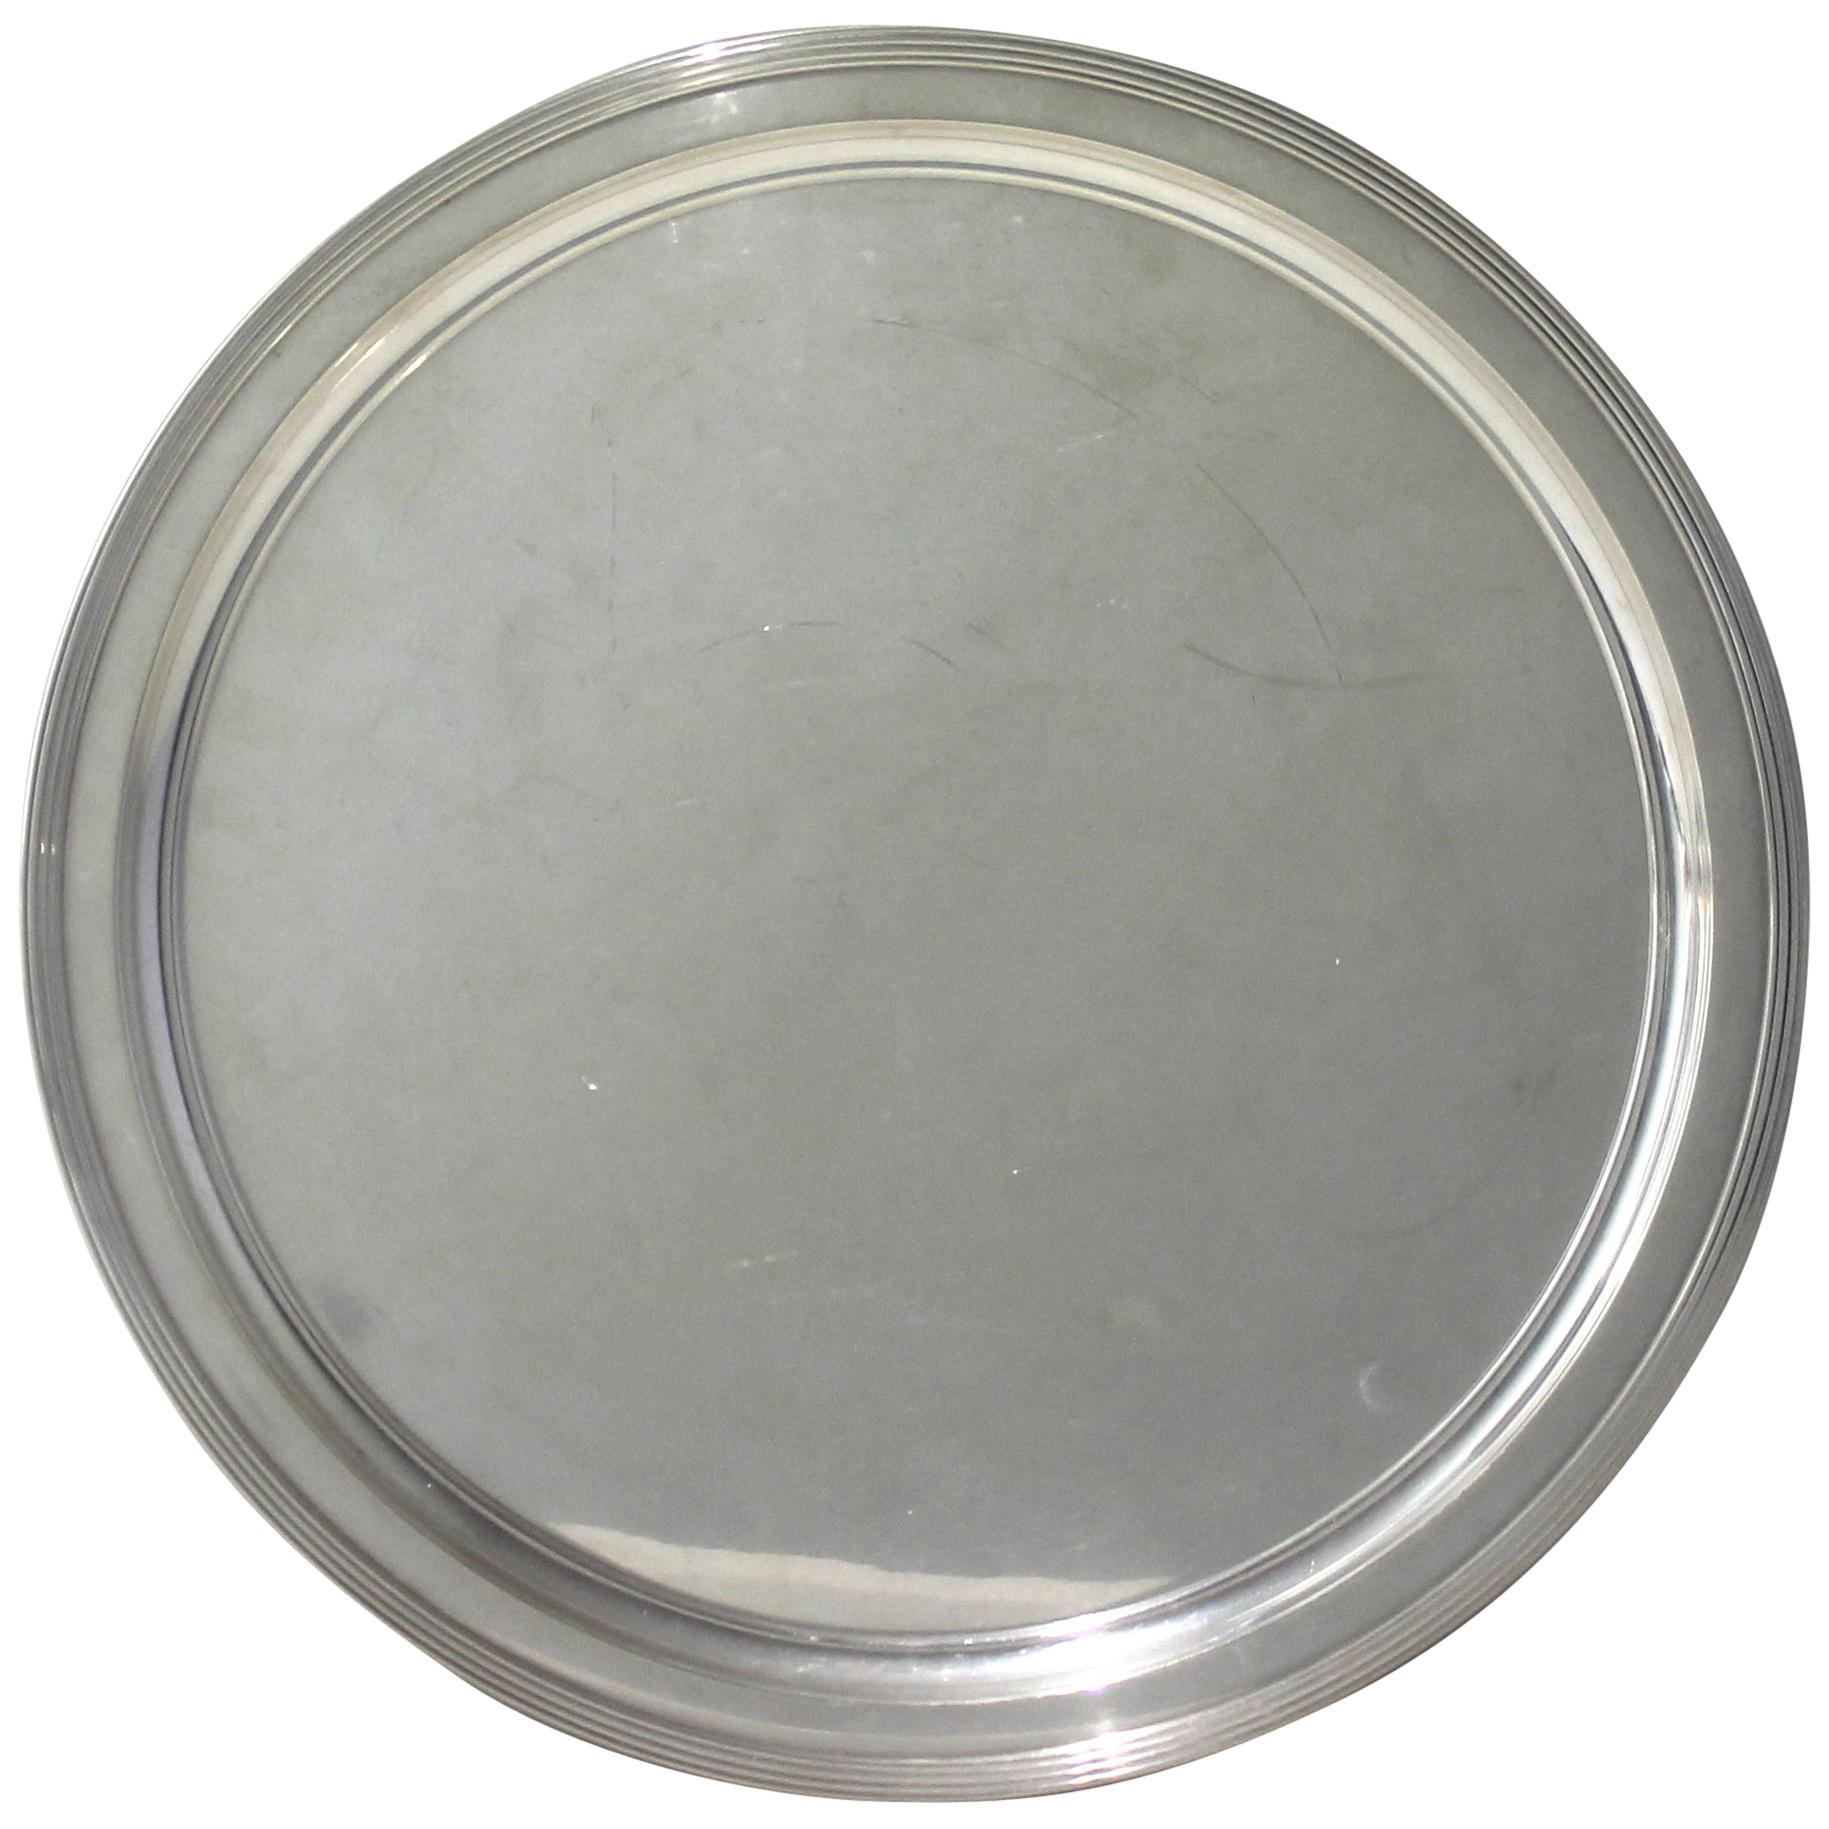 Tiffany & Co. Round Sterling Silver Tray